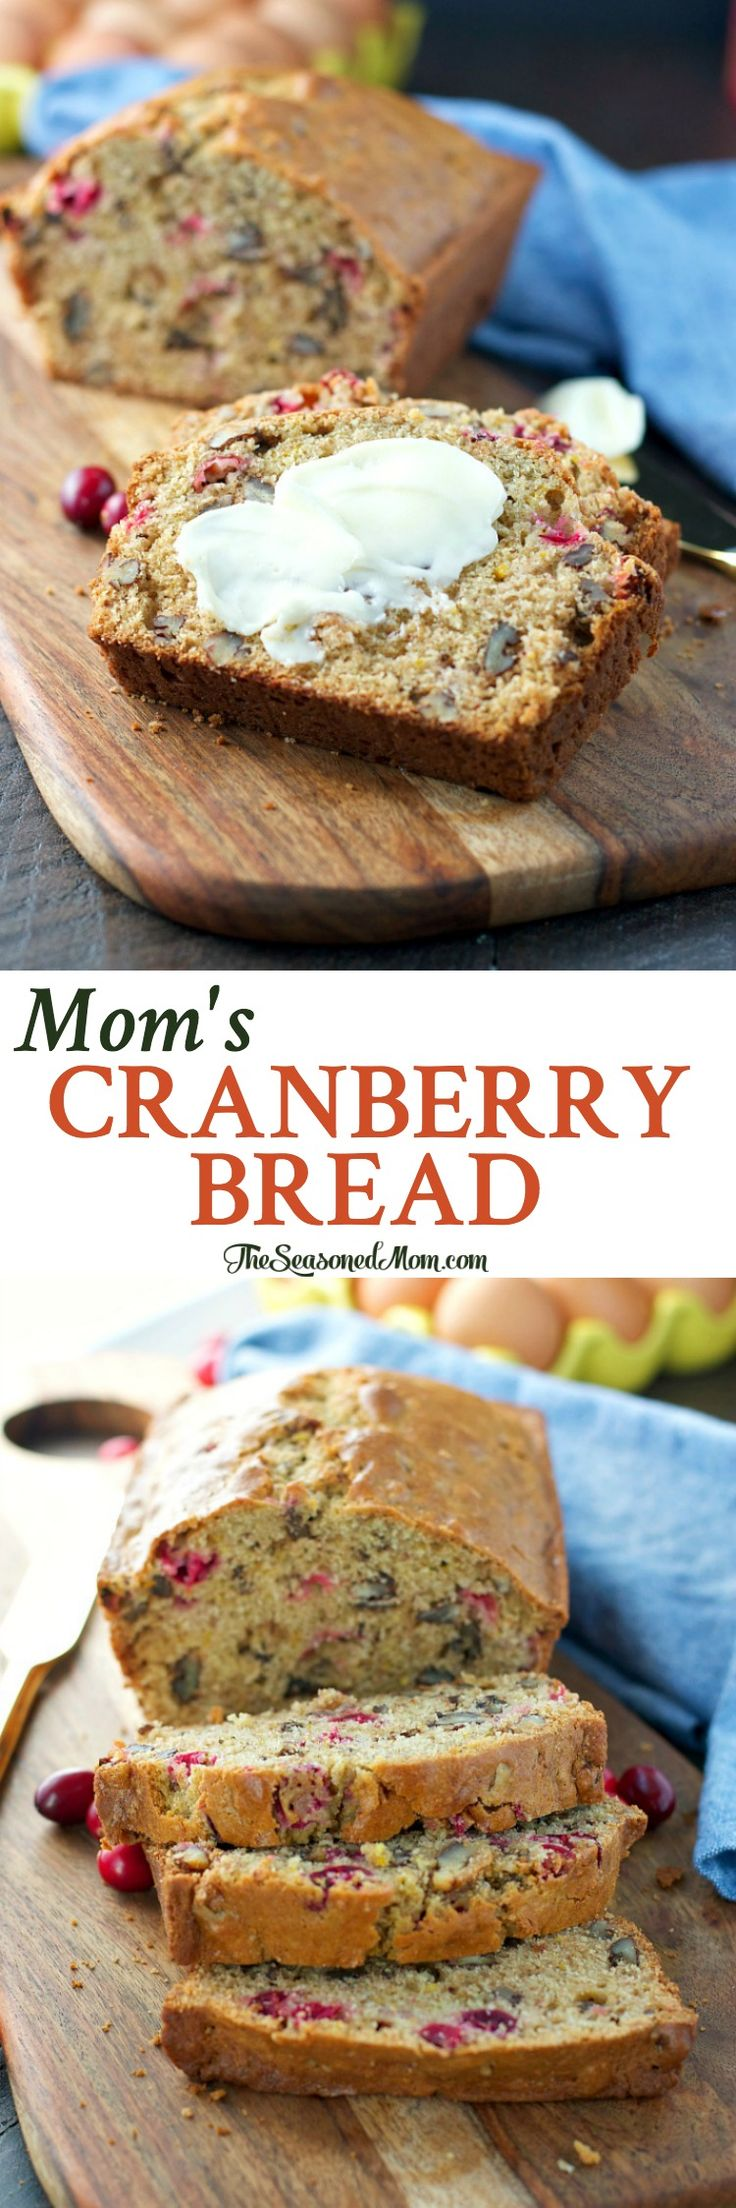 Just 15 minutes of prep for Mom's Cranberry Bread -- a delicious holiday breakfast or brunch option, or an easy Christmas food gift! #HorizonHolidays #ad @horizonorganic